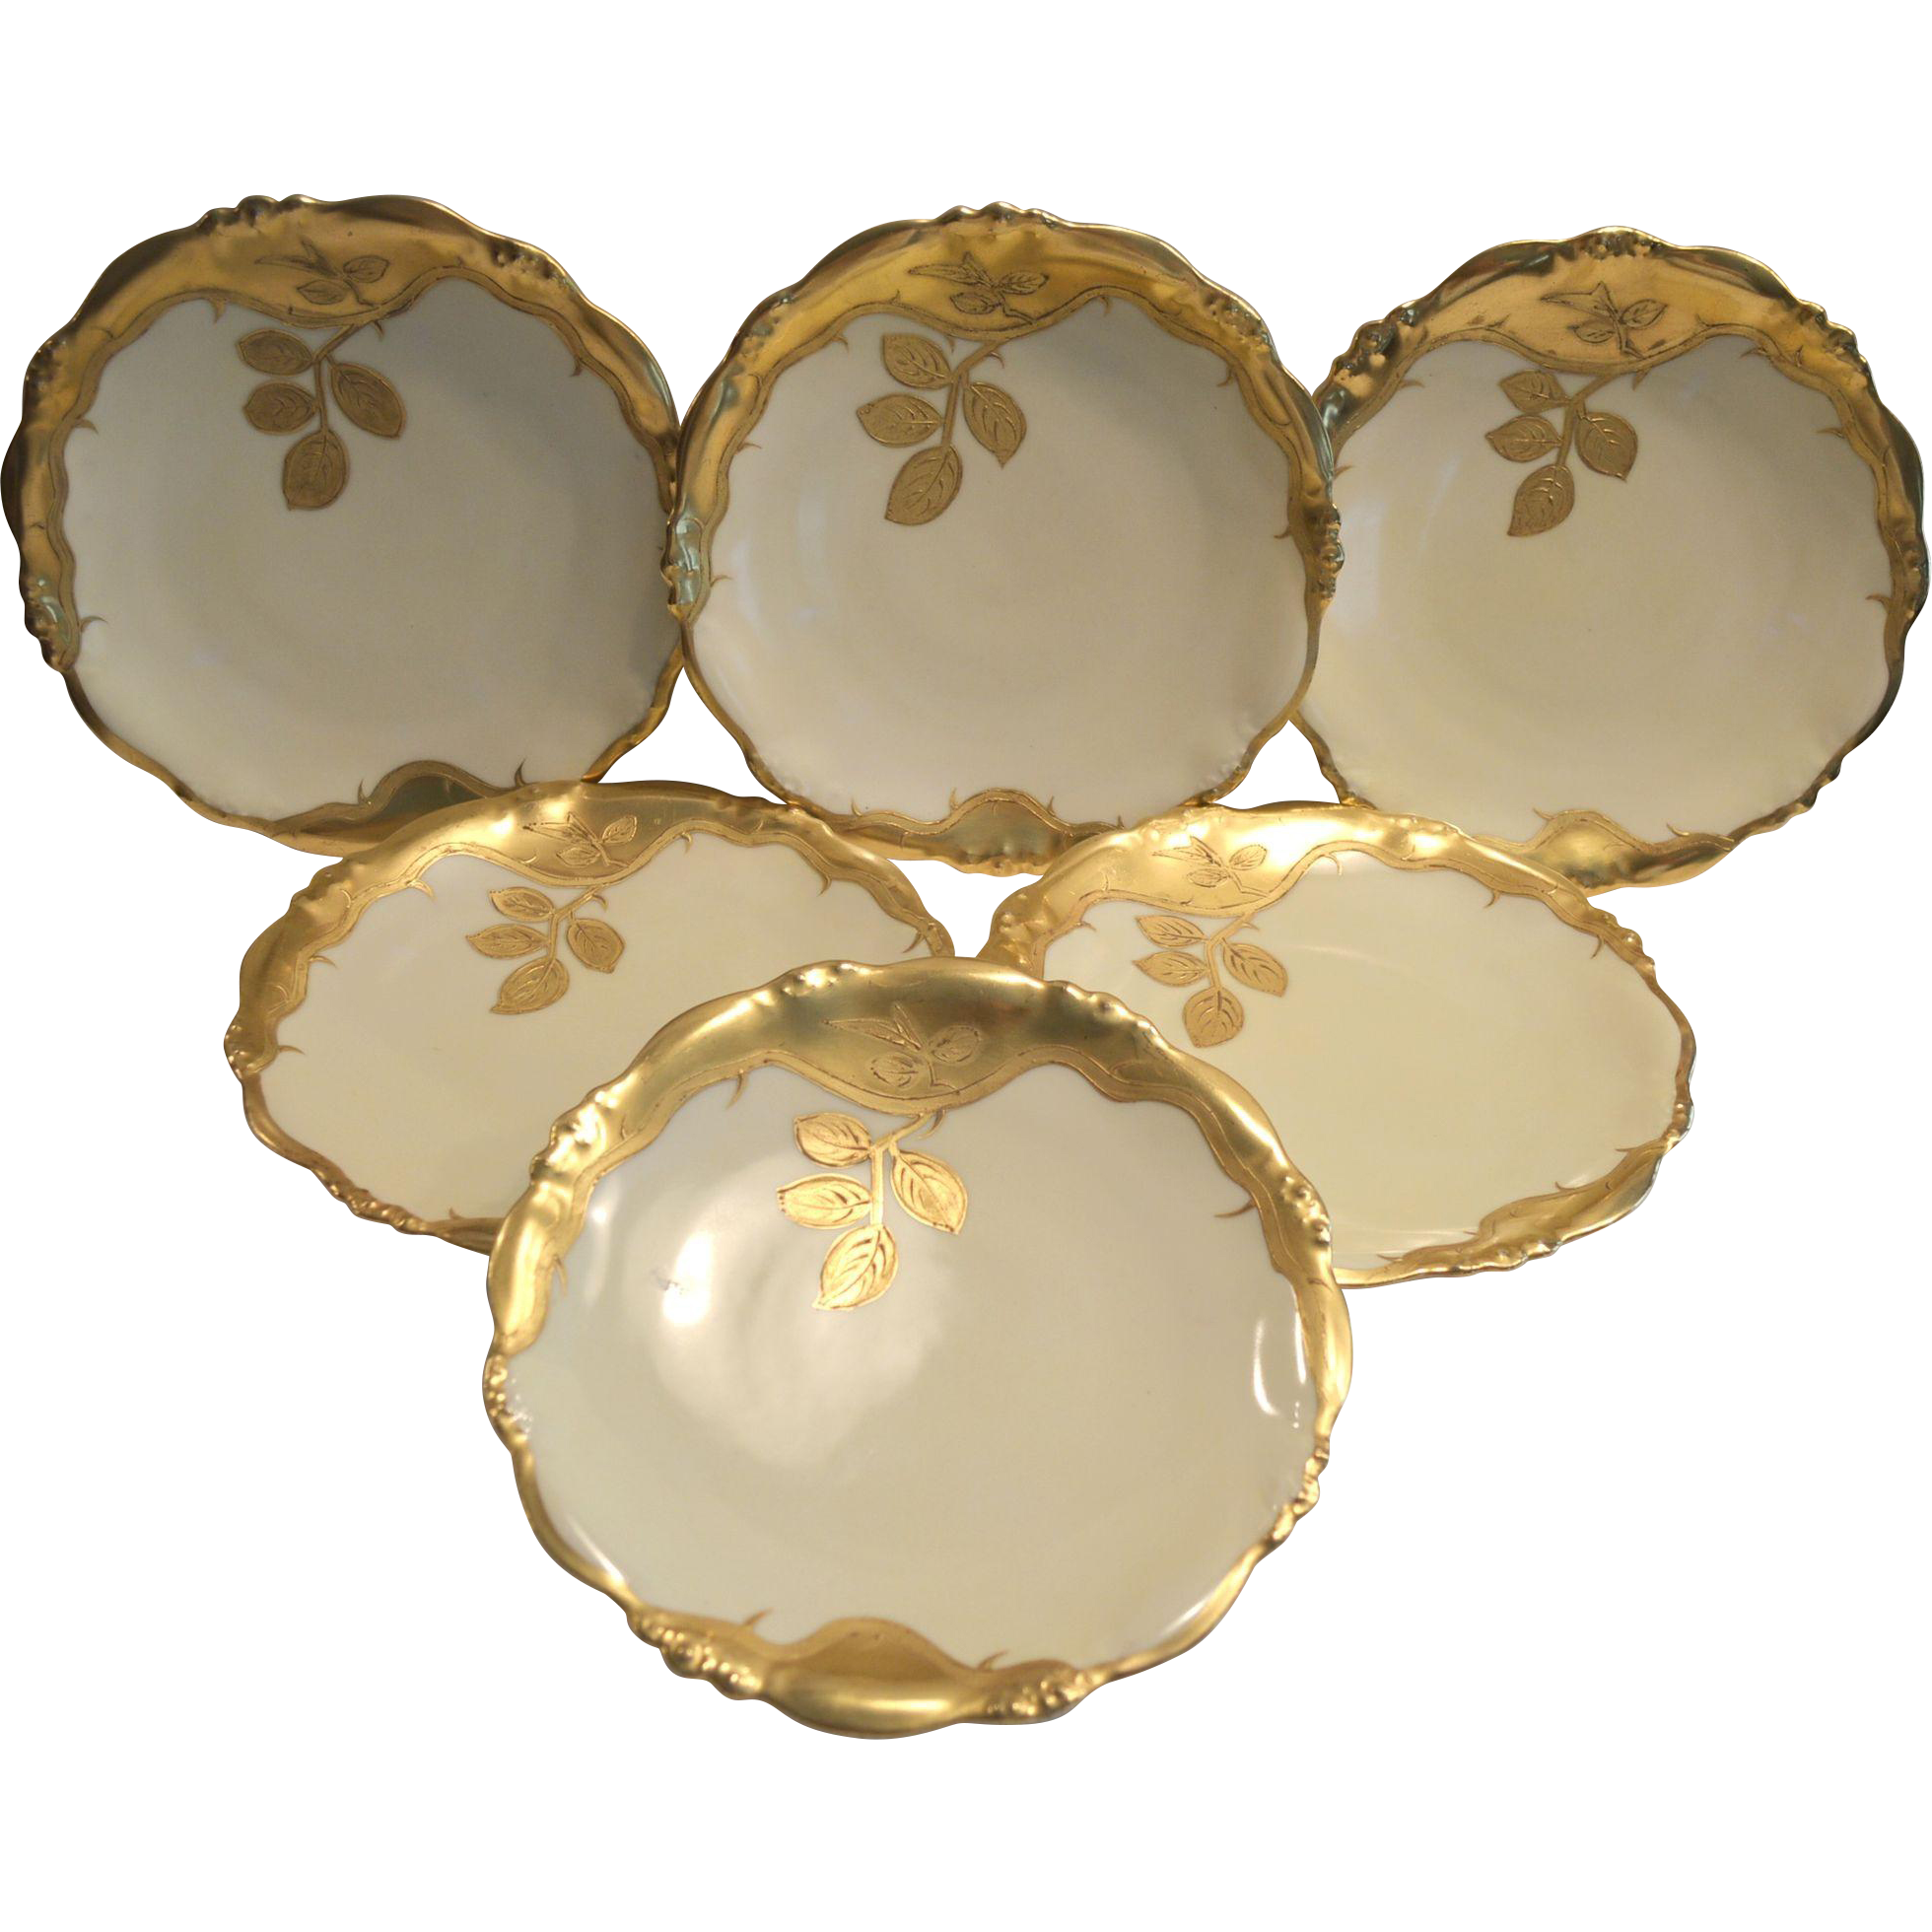 """Set of 6 Awesome 8 ¼""""  Plates ~ Limoges Porcelain ~ Gold Encrusted Branches and Leaves ~ Bawo & Dotter Elite Works 1900-1914 Higgings & Seiter NY"""